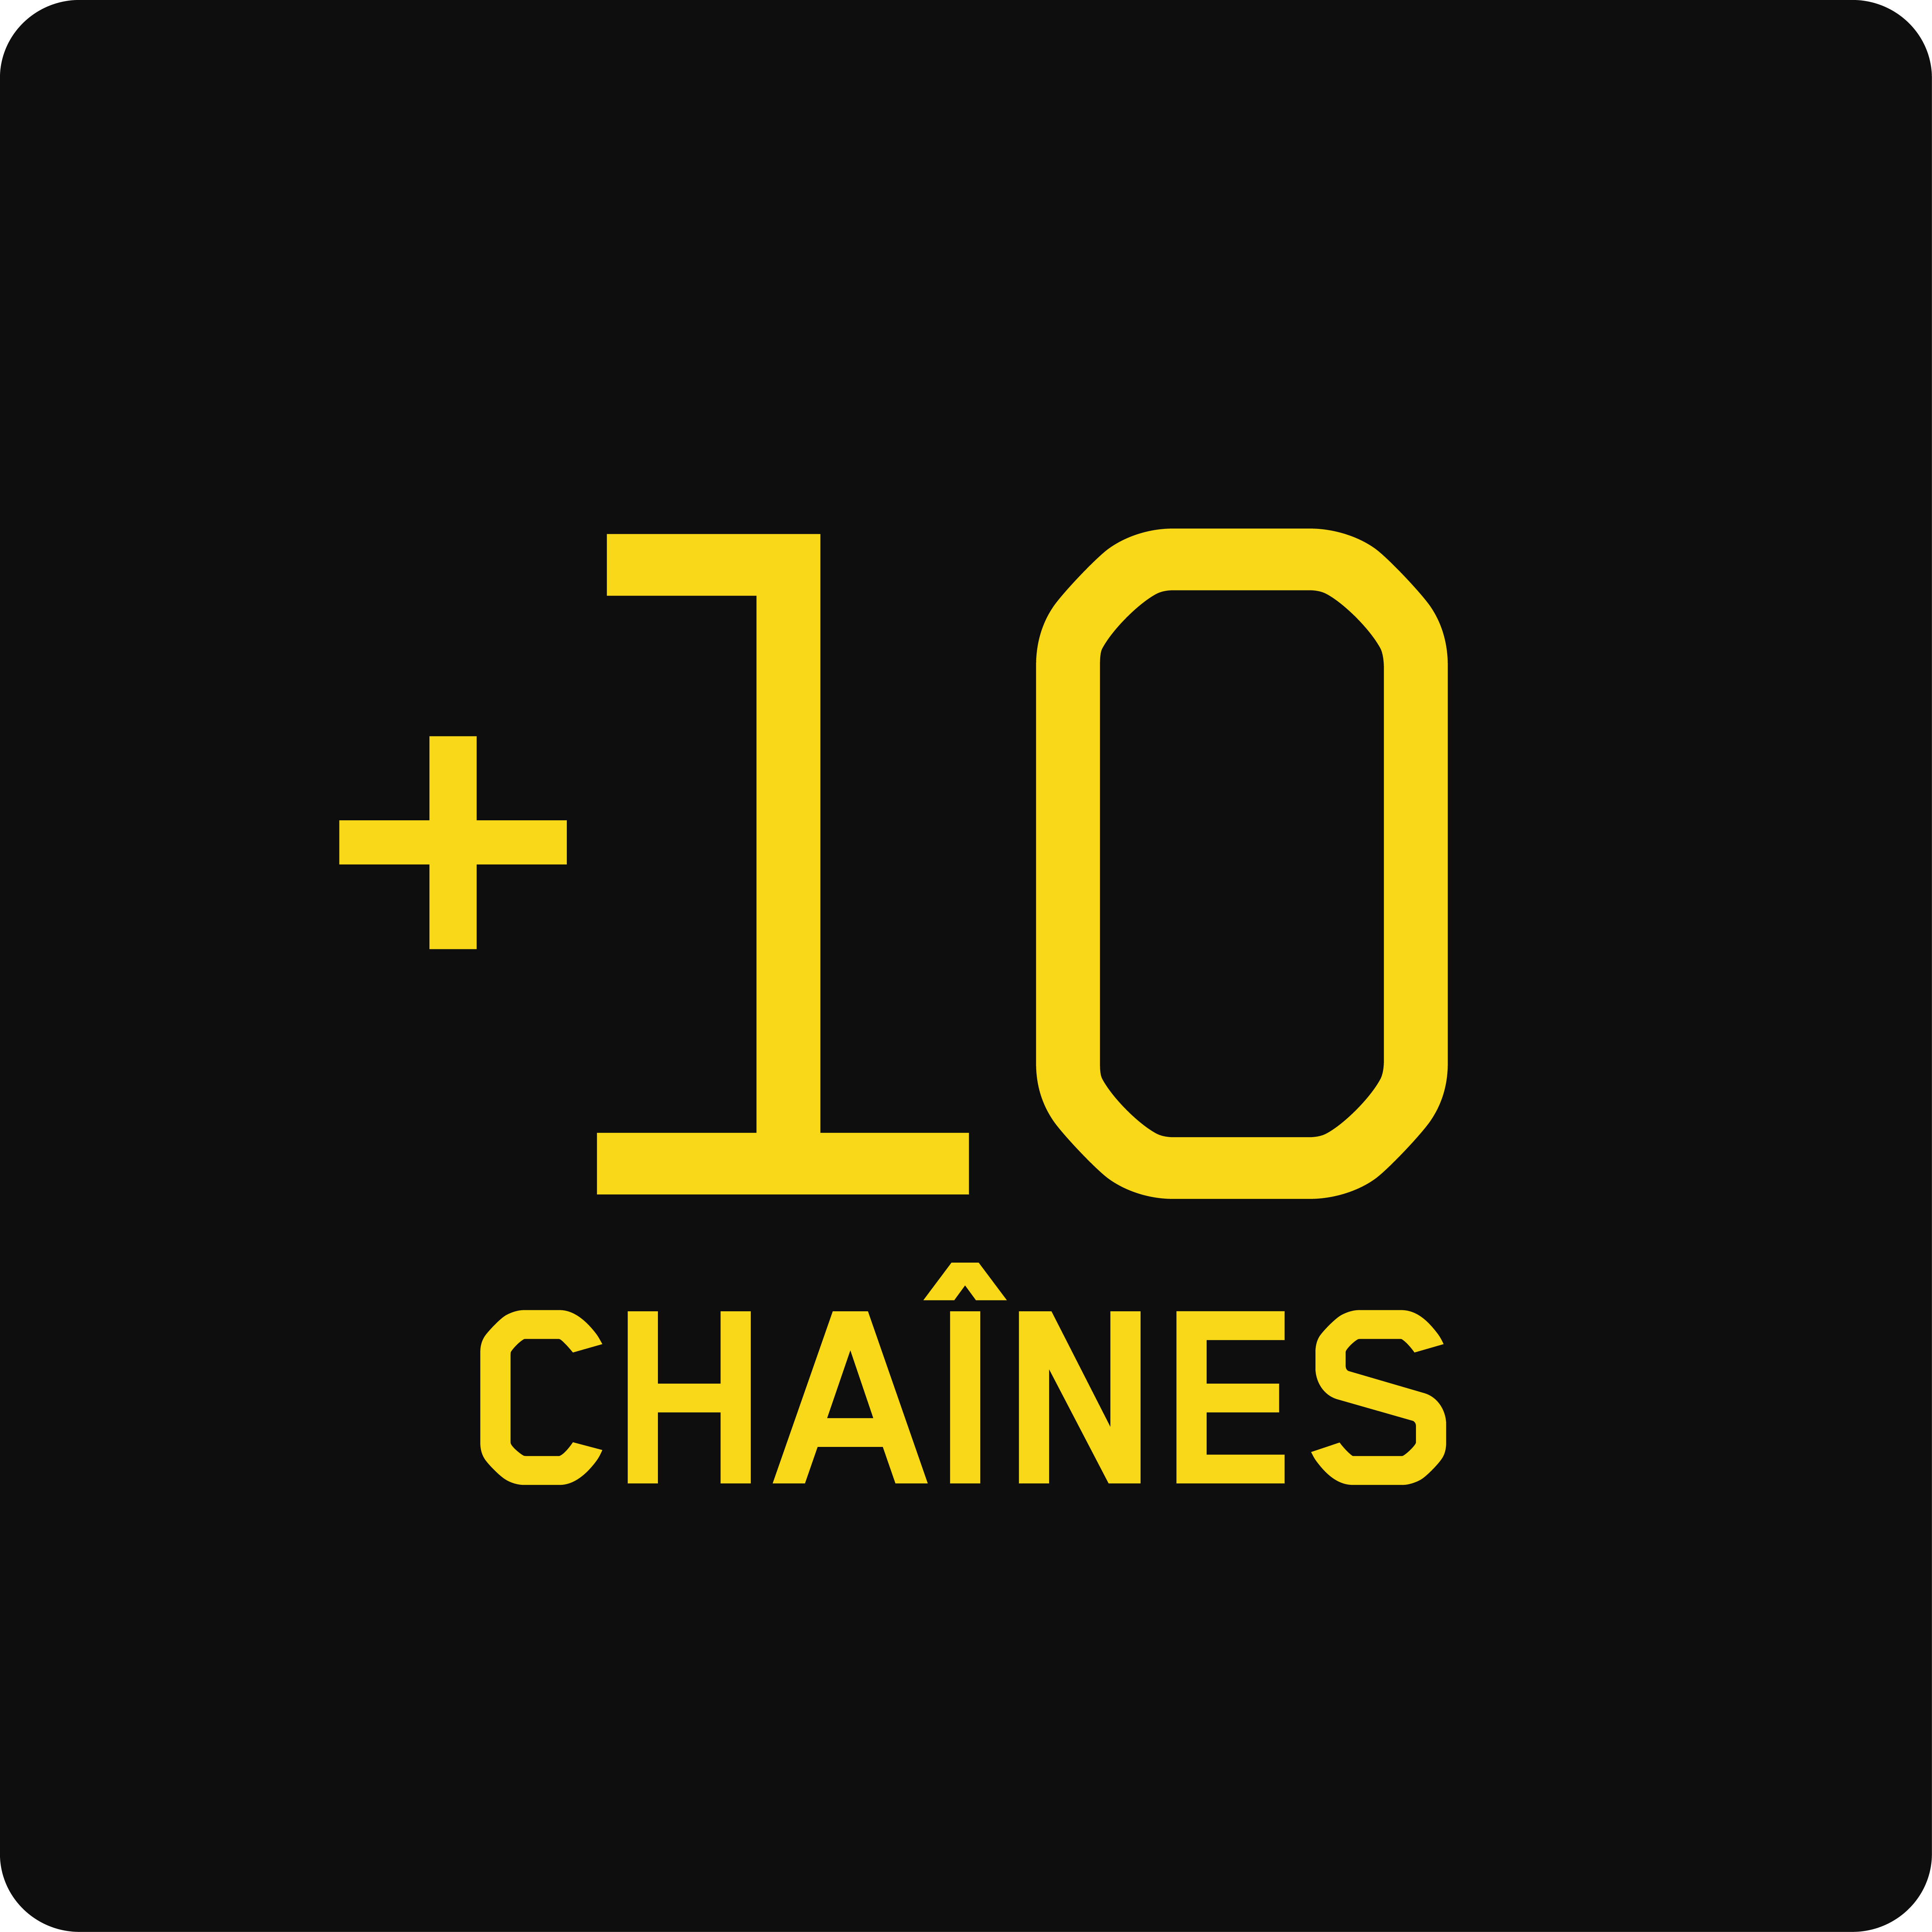 10 chaînes additionnelles